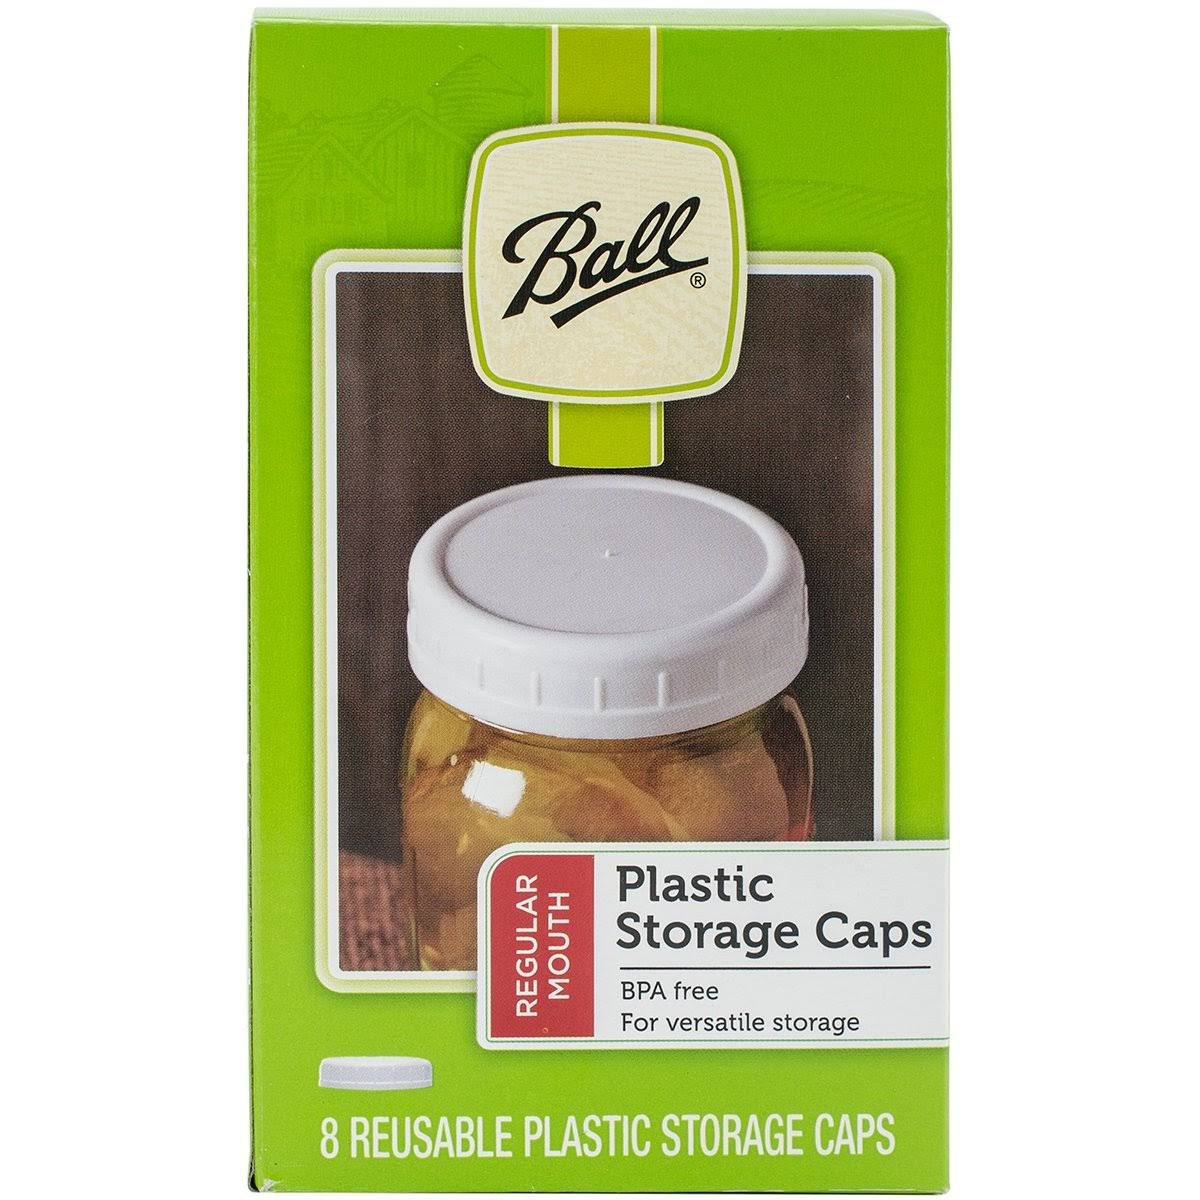 Ball Plastic Storage Caps - Wide Mouth, 8 Pack